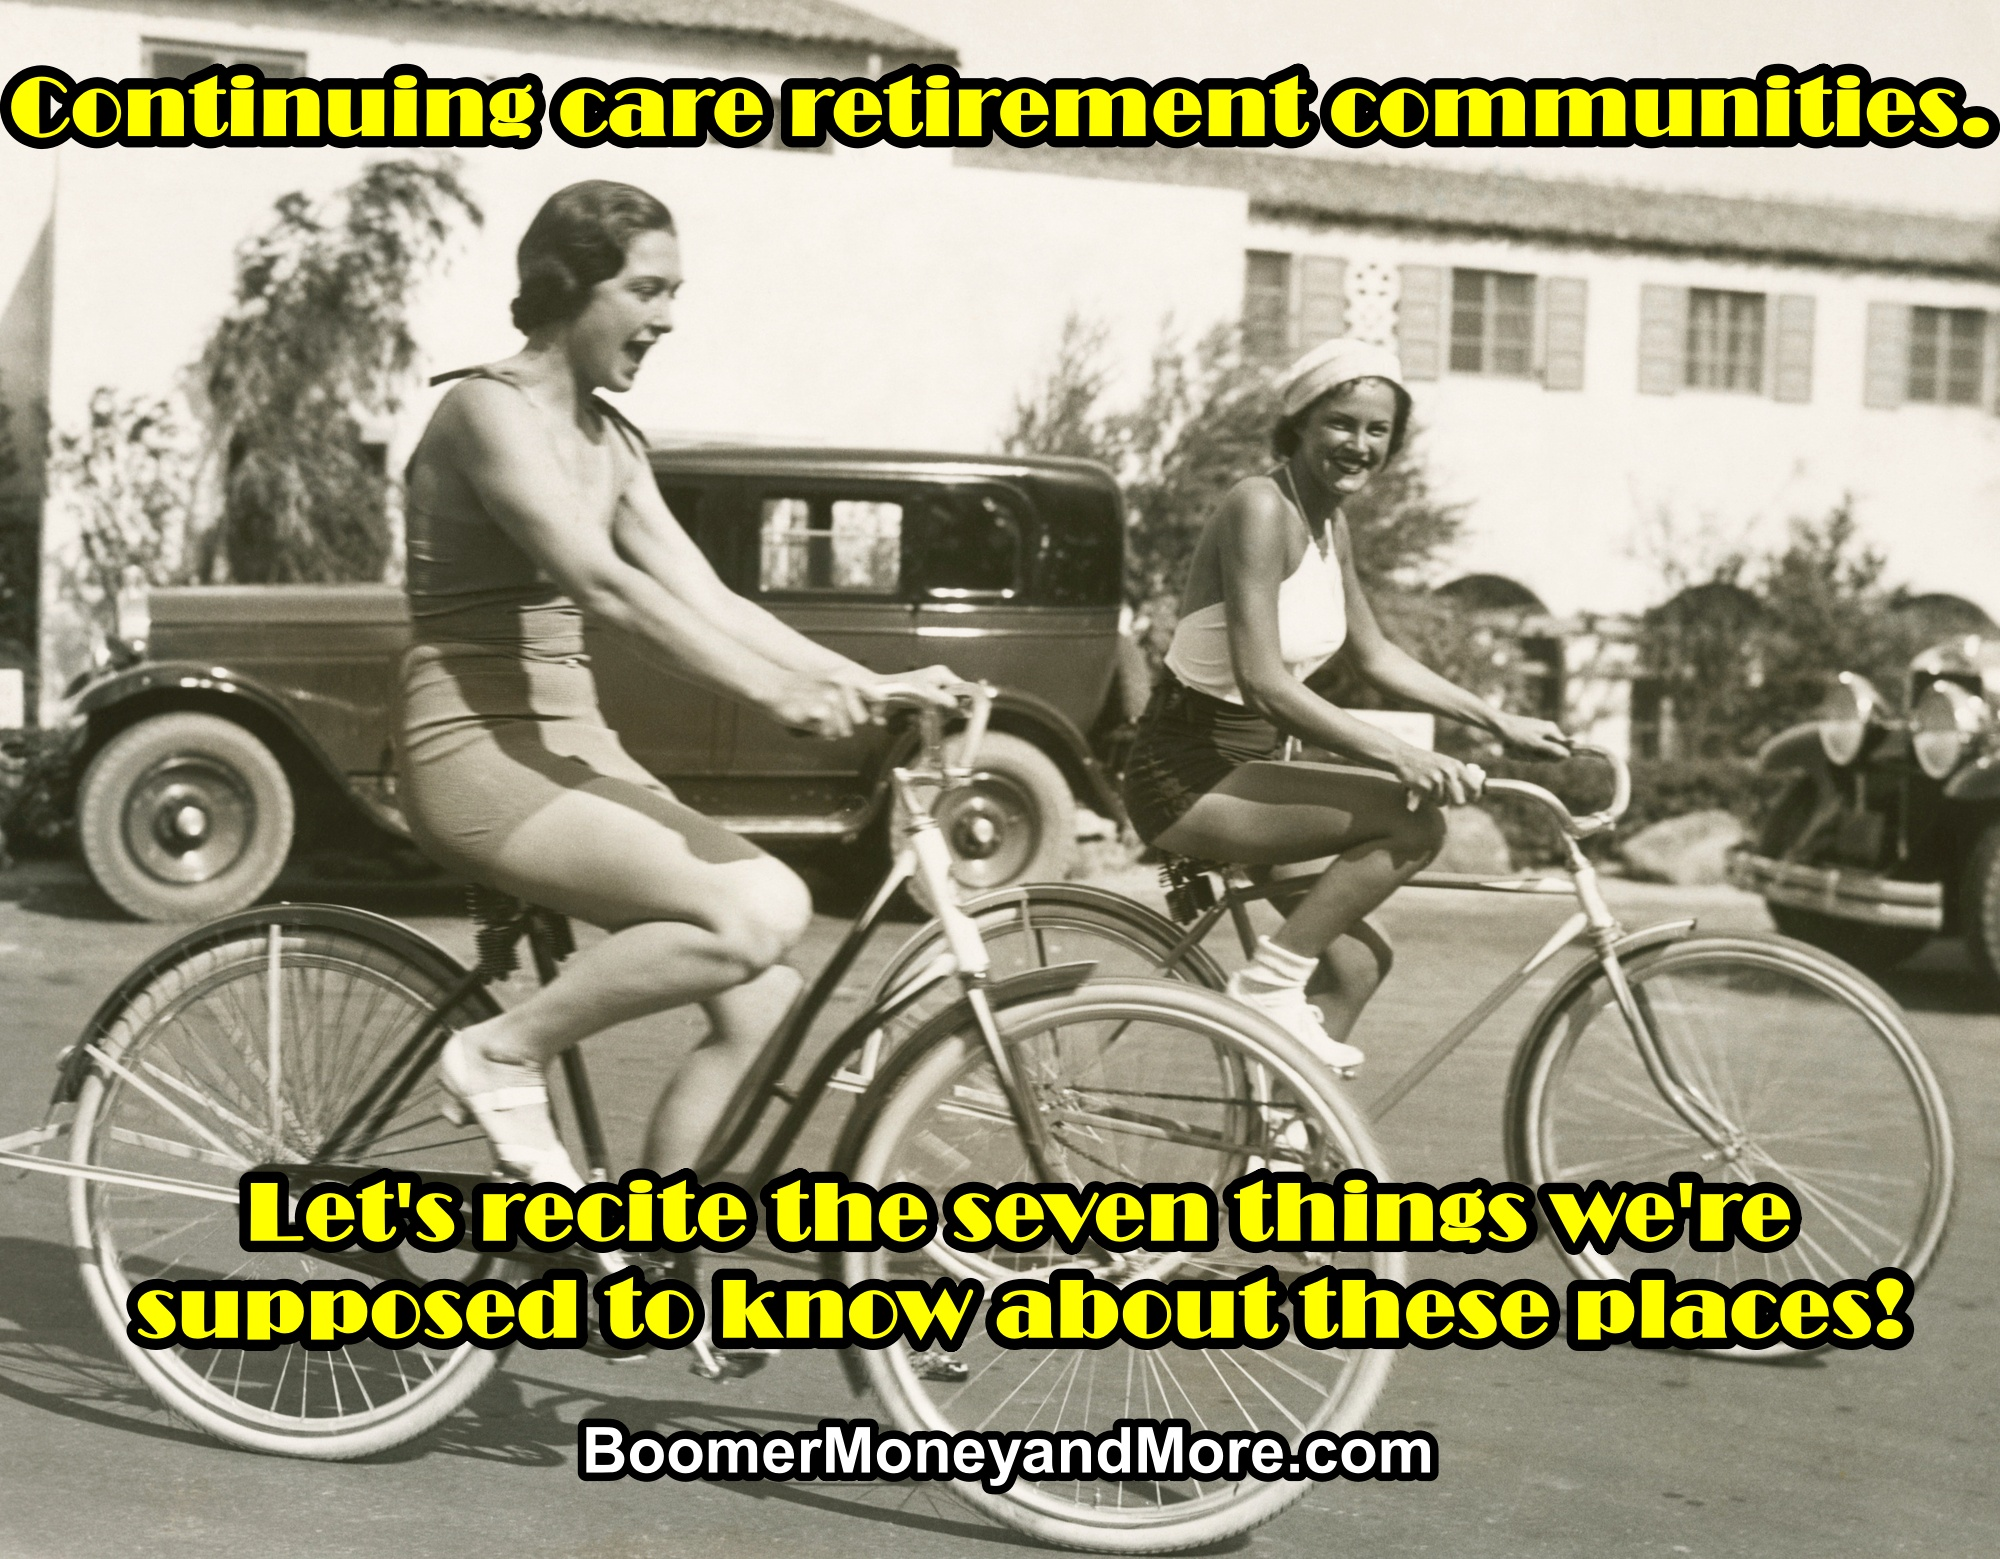 Vintage black and white photo of two women riding their bikes through a continuing care retirement community.